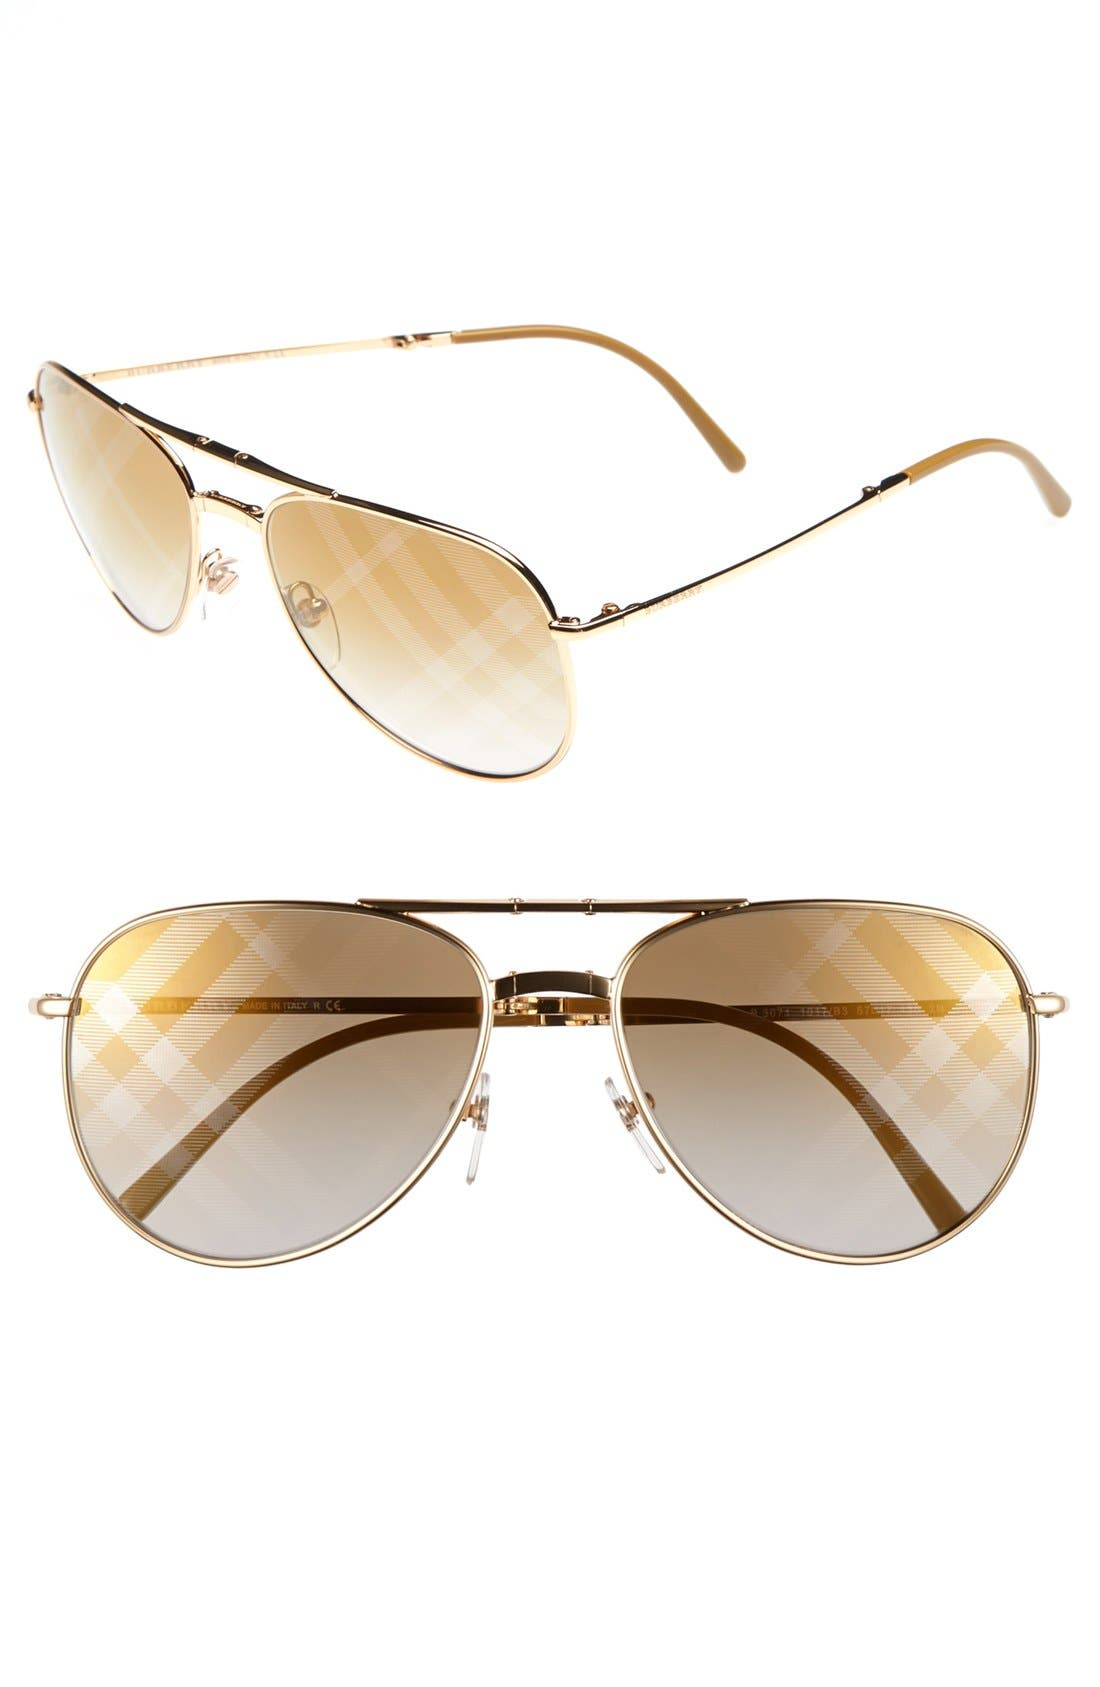 Alternate Image 1 Selected - Burberry 57mm Aviator Sunglasses